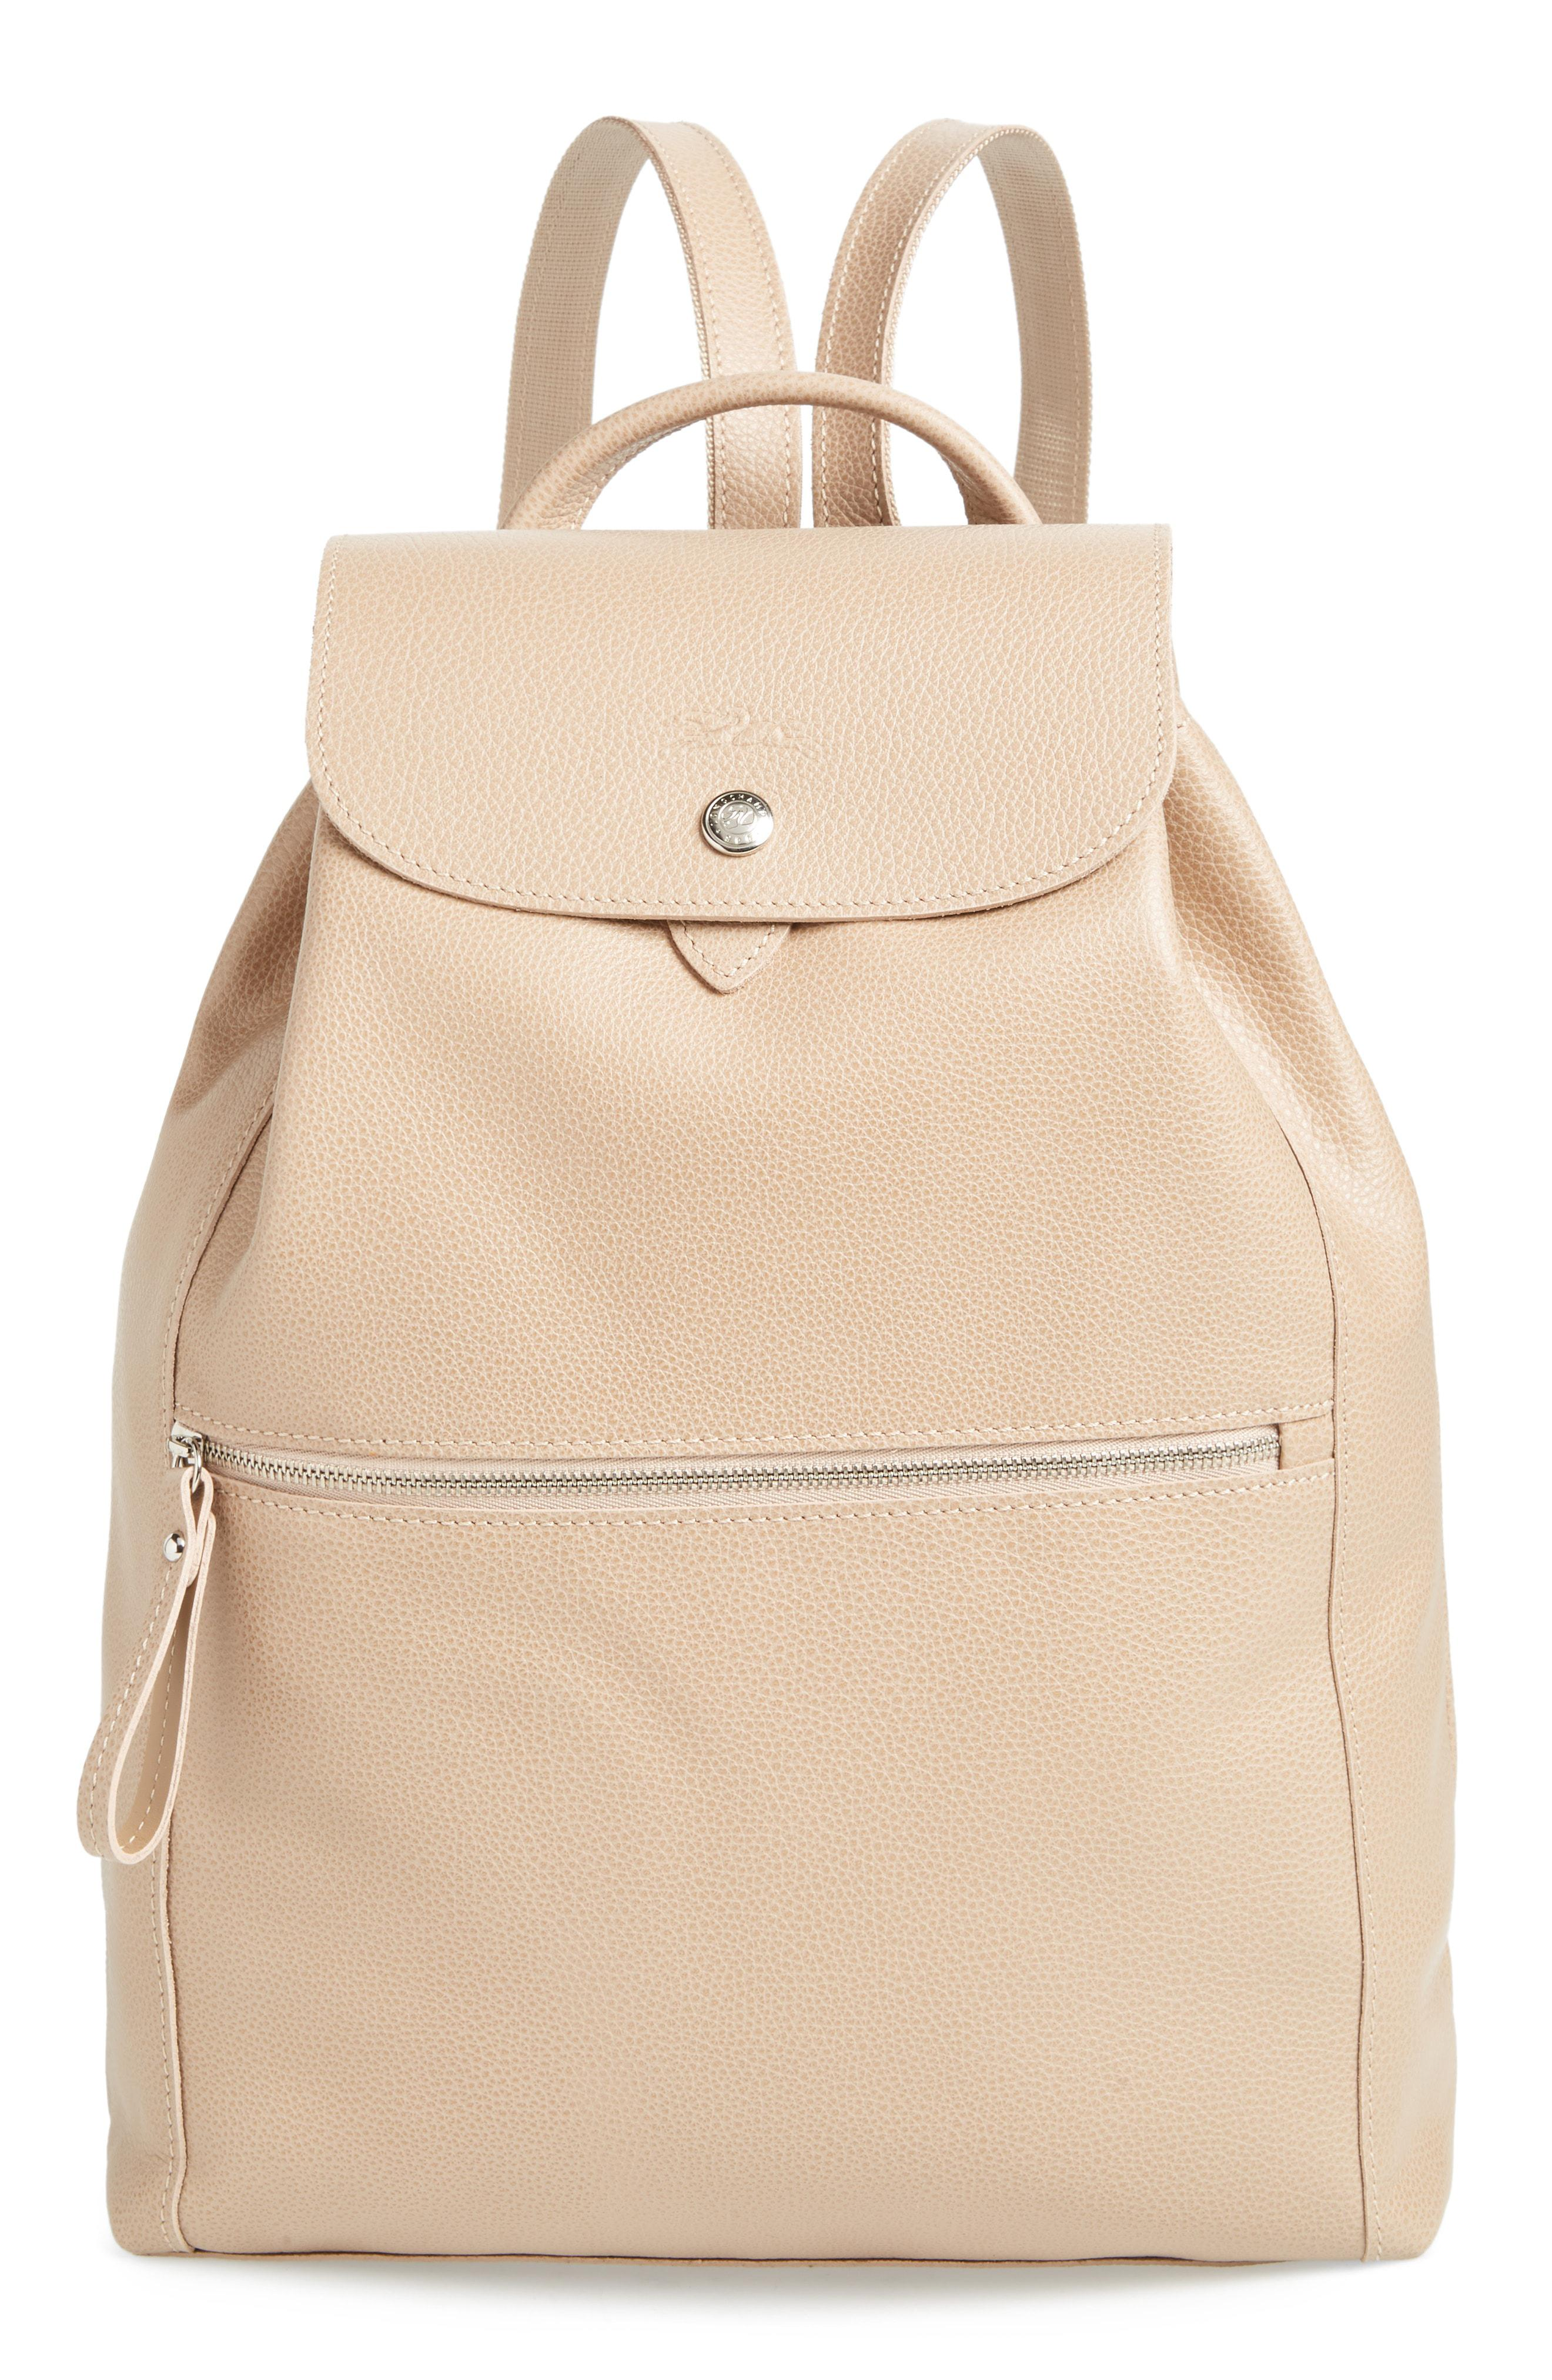 b926e4eee7fe Lyst - Longchamp Leather Backpack - in Natural